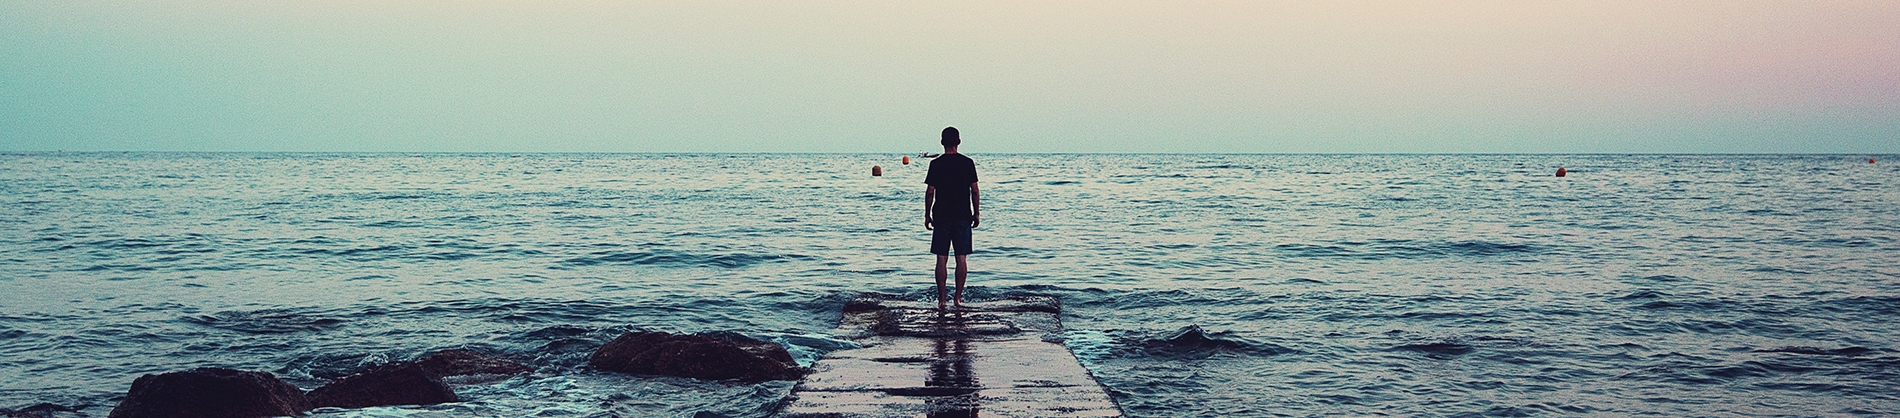 A man stood on the end of a wooden pier looking out to sea